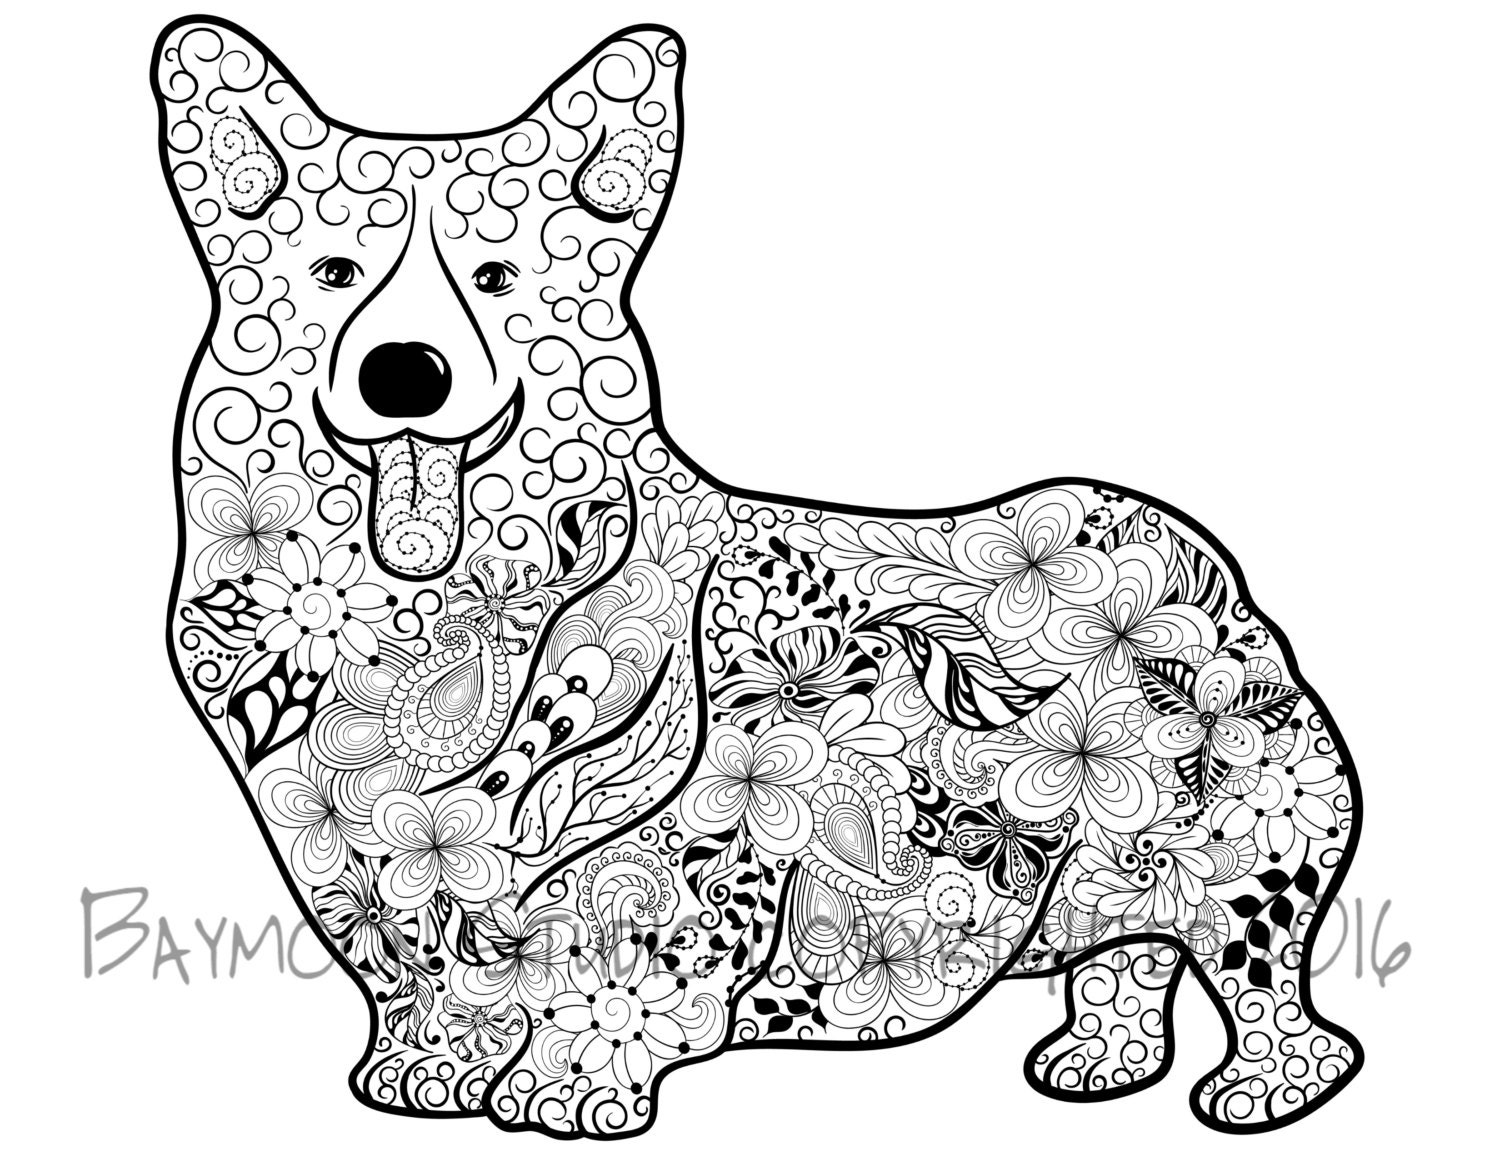 Pembroke Welsh Corgi Coloring Page Printable By Baymoonstudio Corgi Coloring Pages